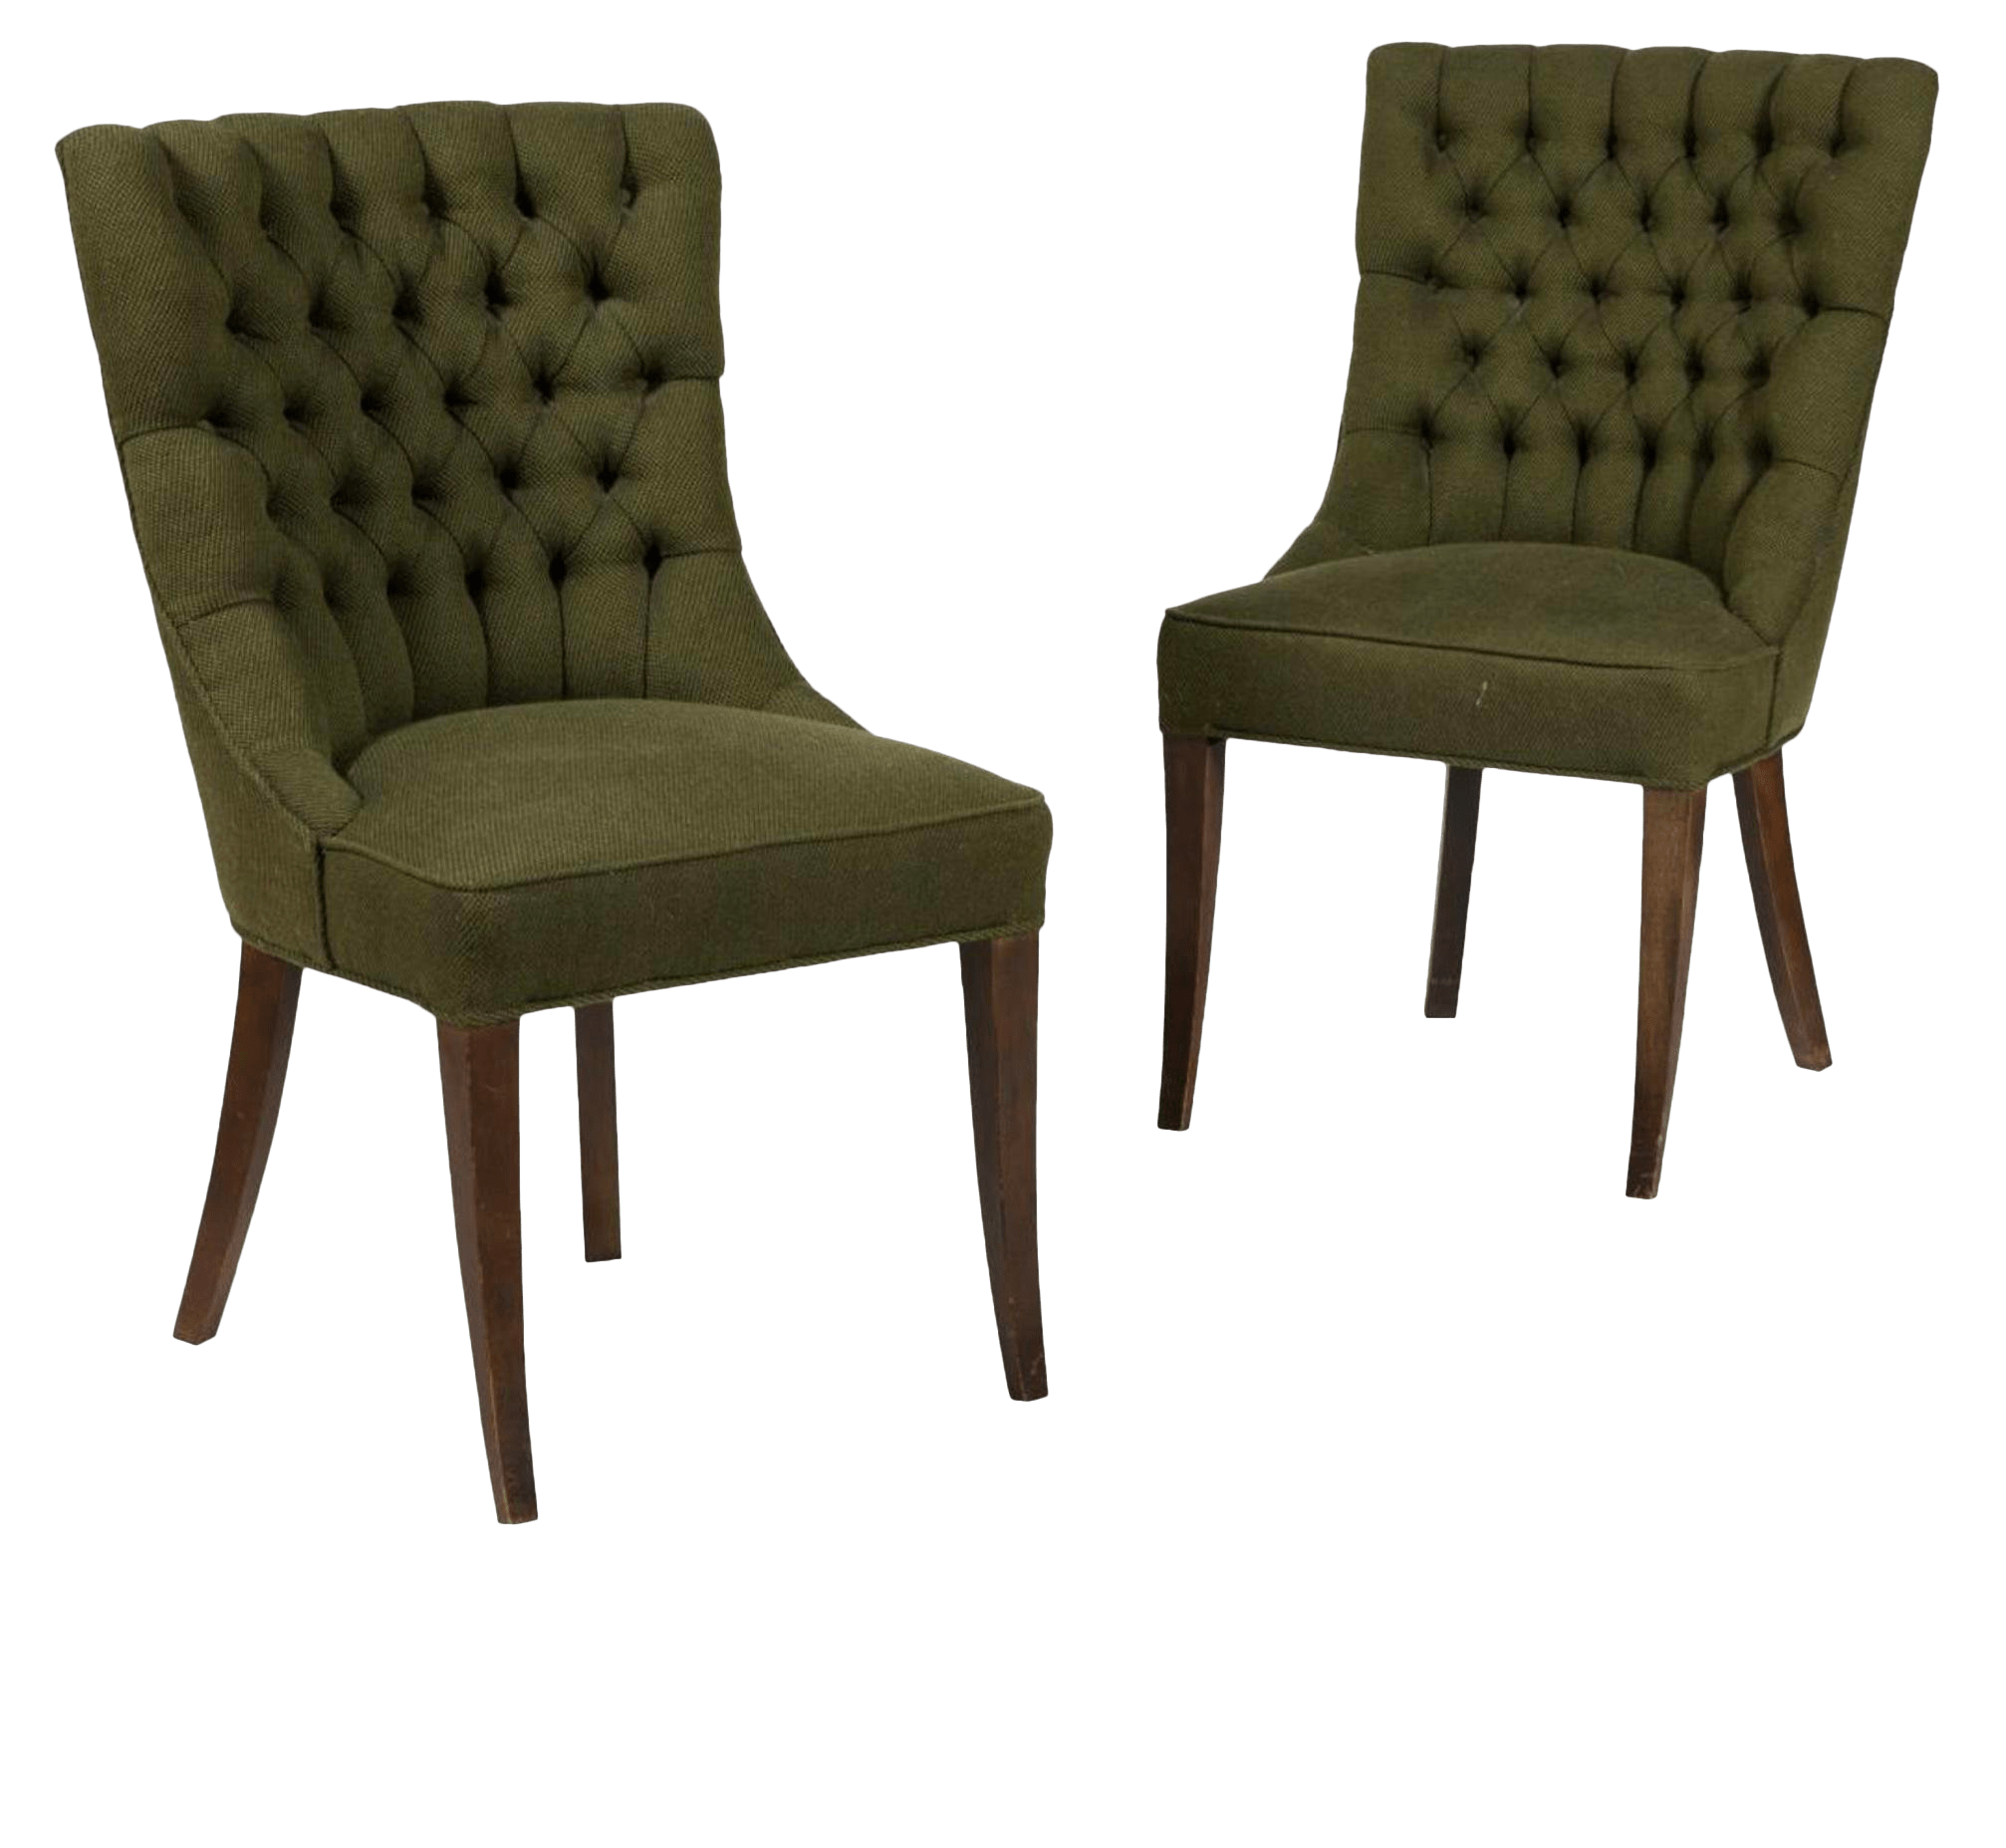 unique accent chairs twin bed sleeper chair vintage used for sale chairish 1960 s john stuart tufted high back a pair